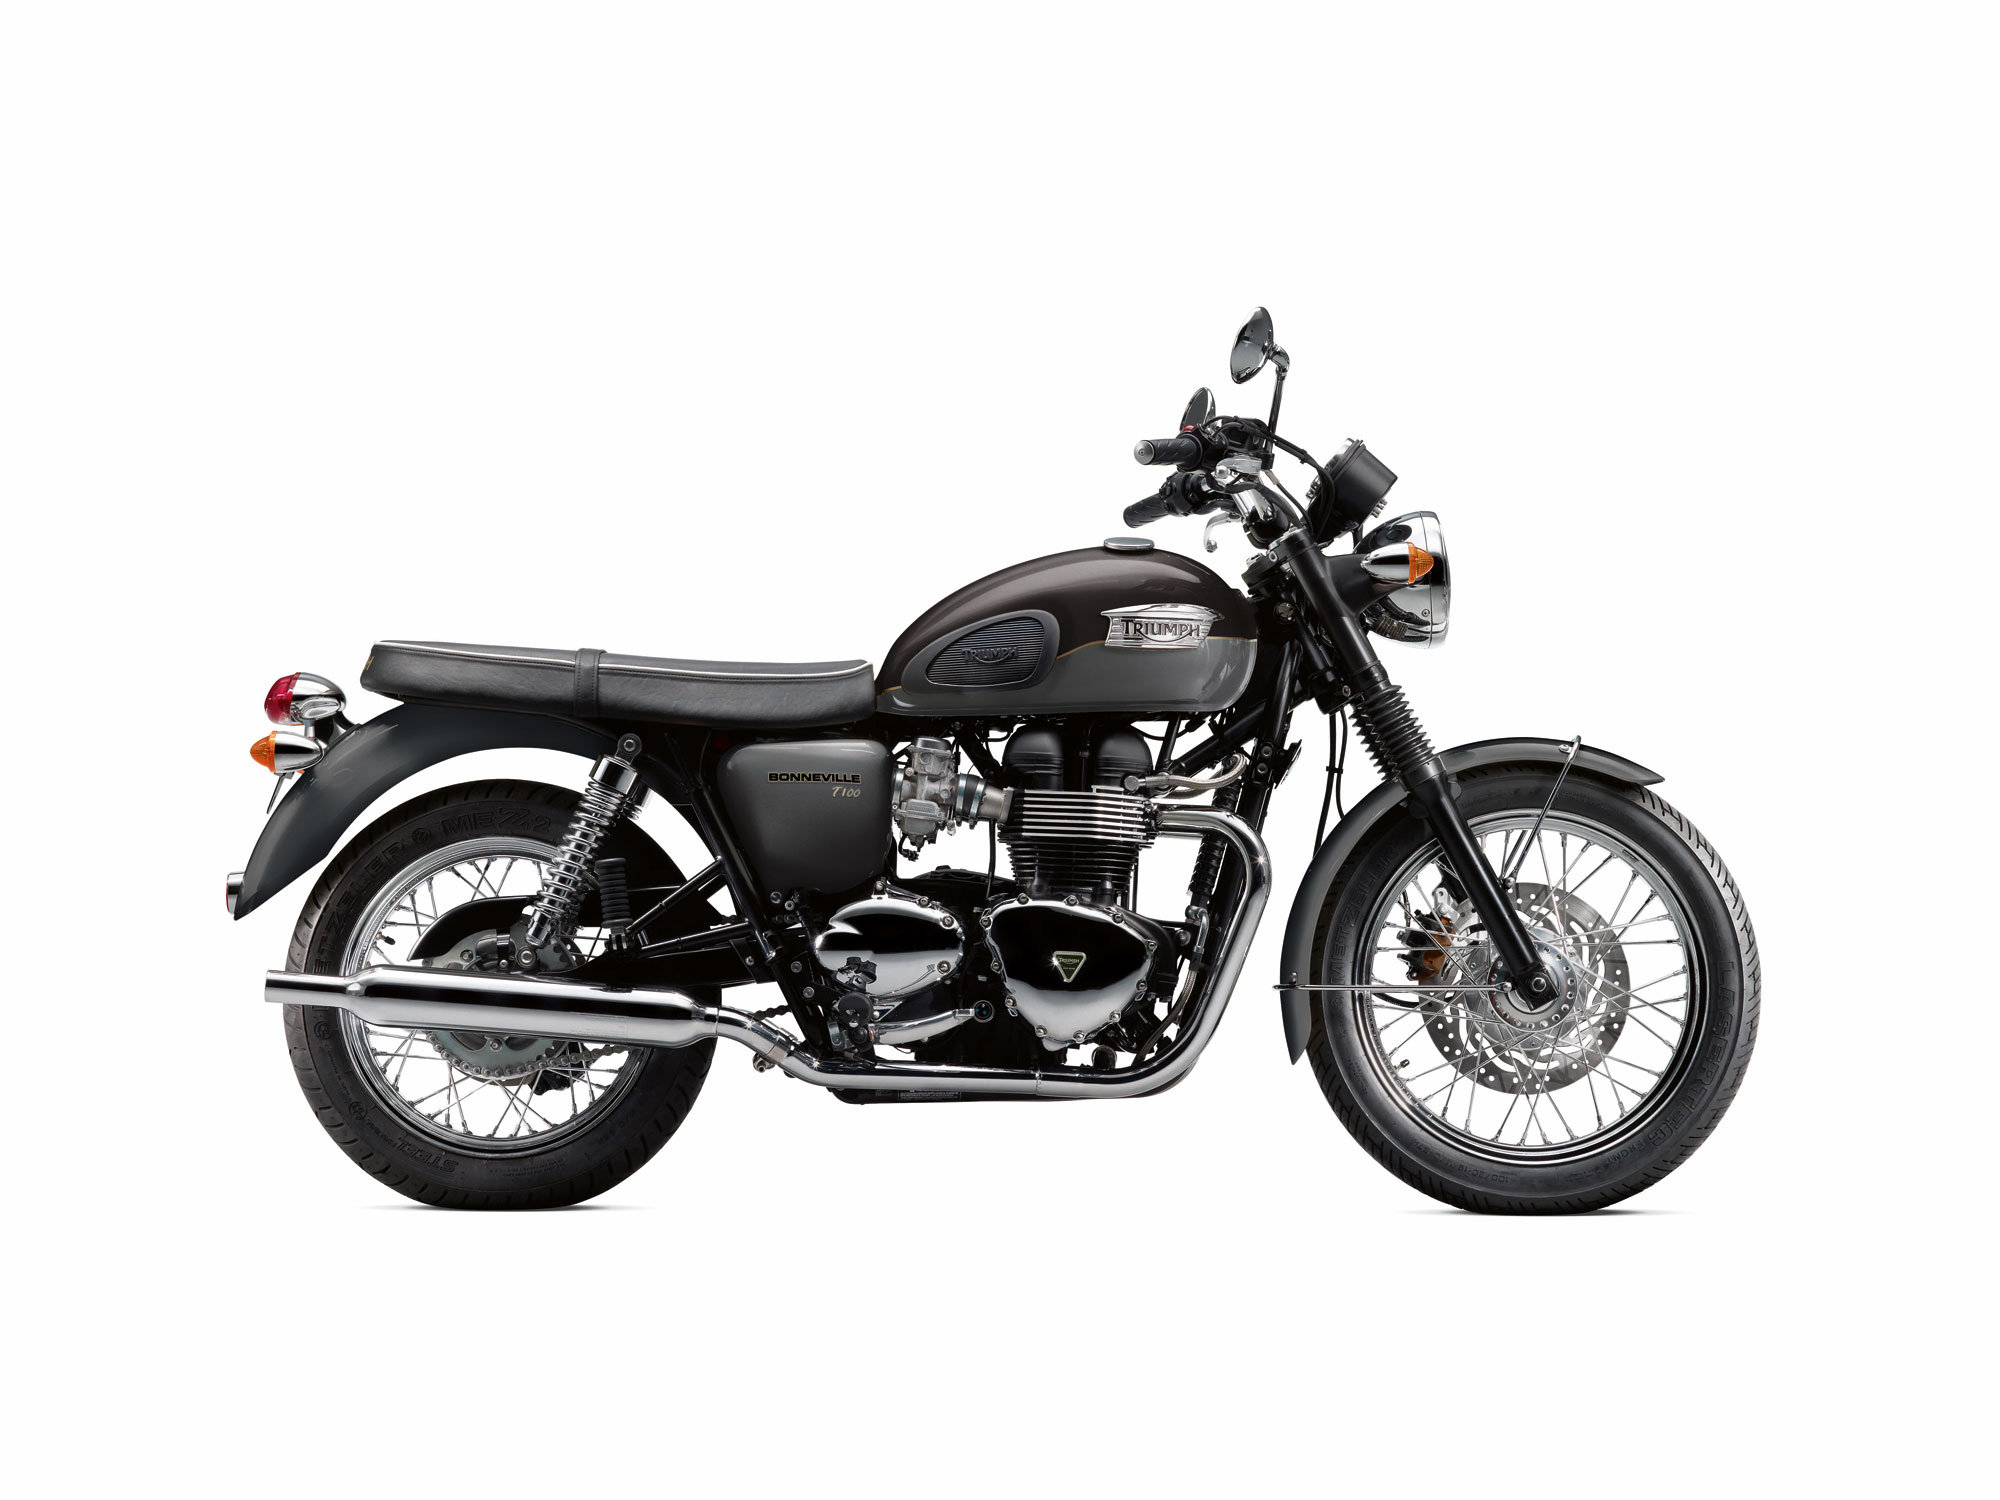 2013 Triumph Bonneville T100 | Top Speed. »